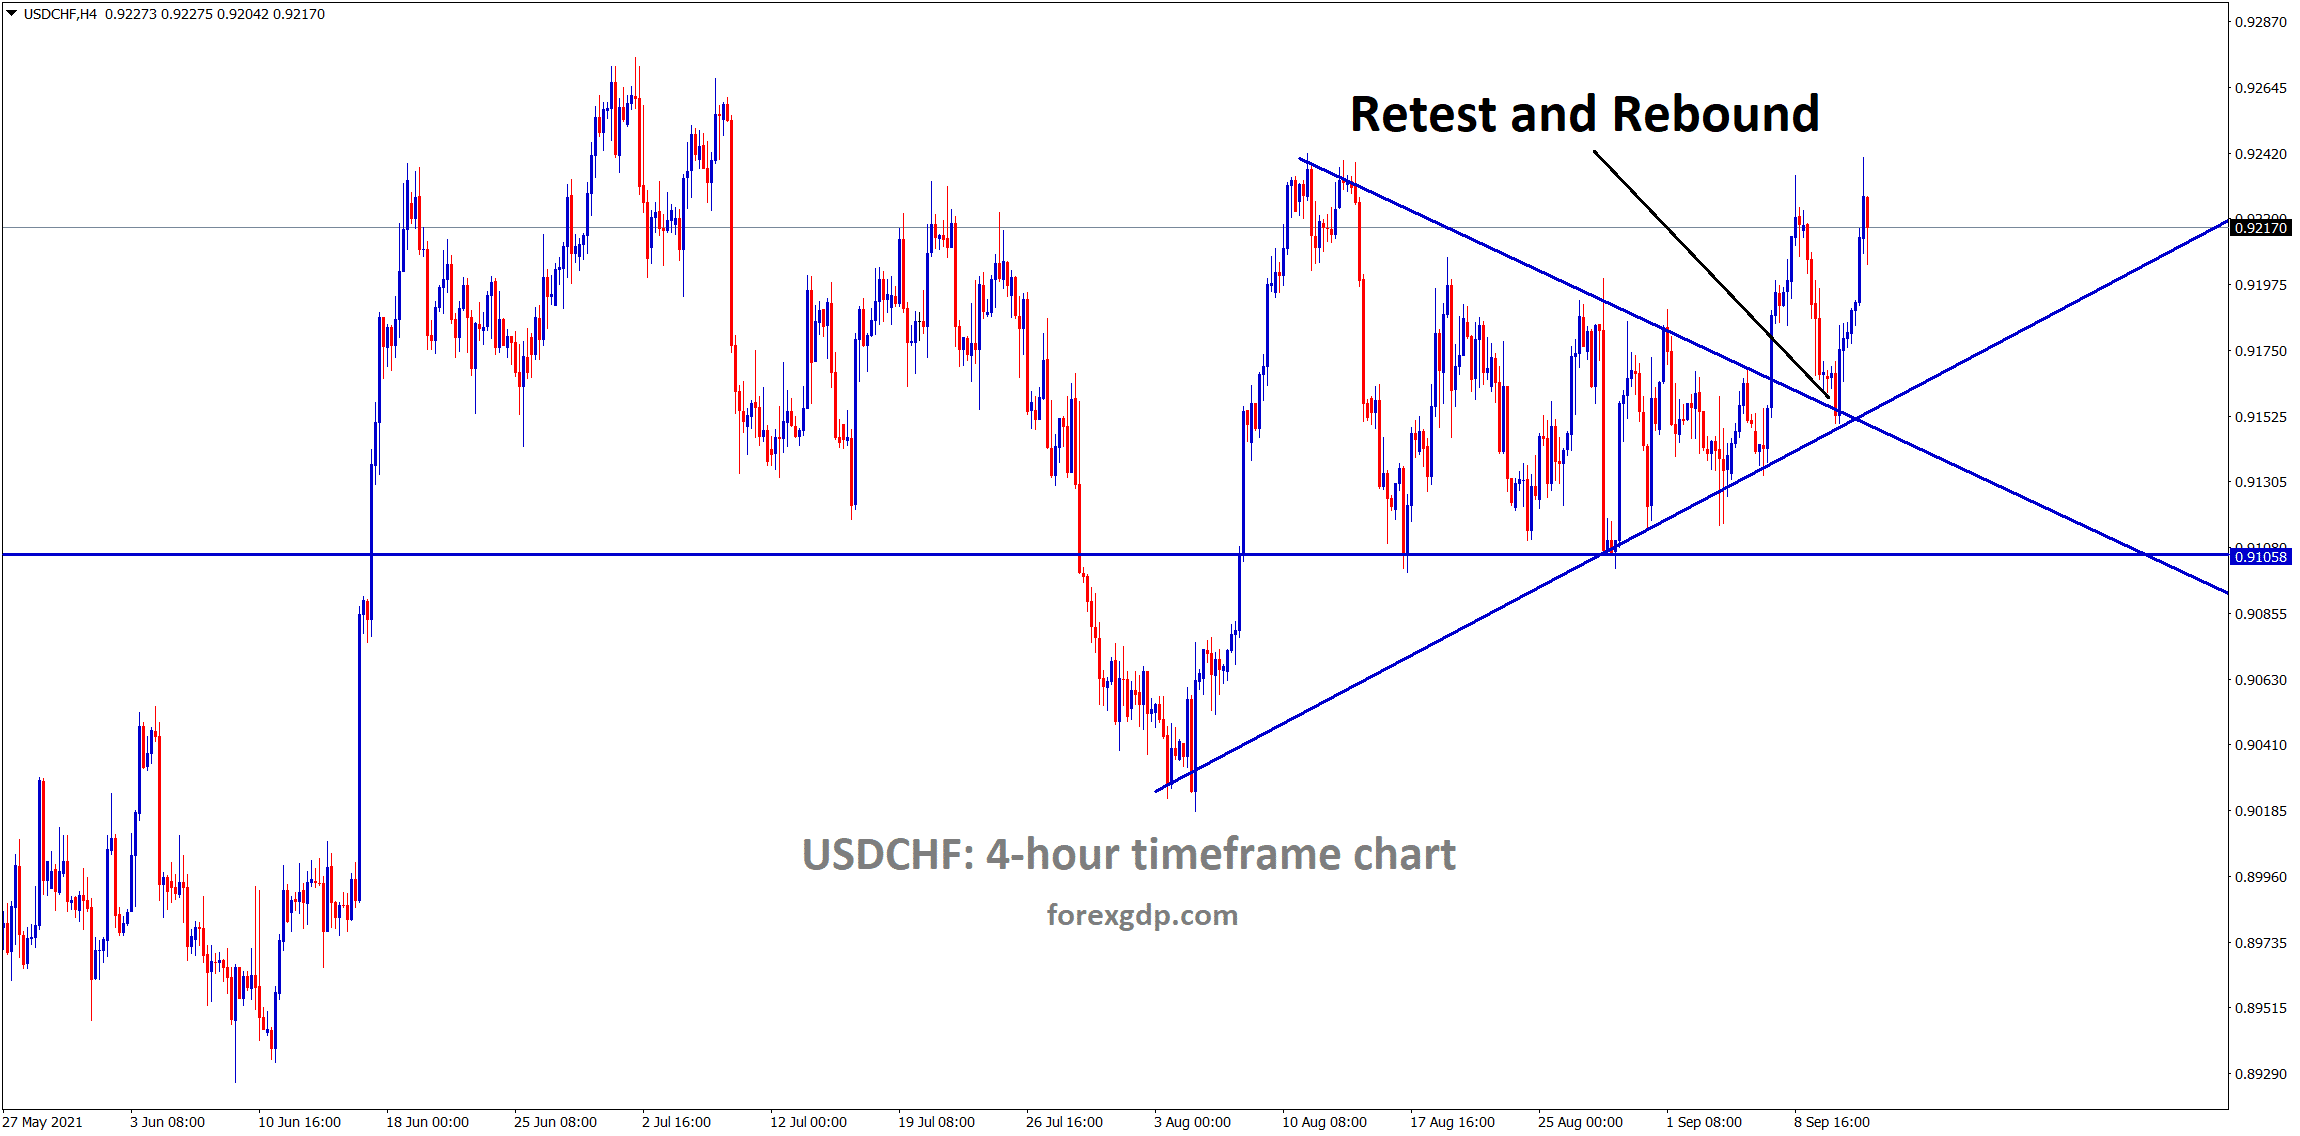 USDCHF has retested and rebounded from the broken triangle pattern